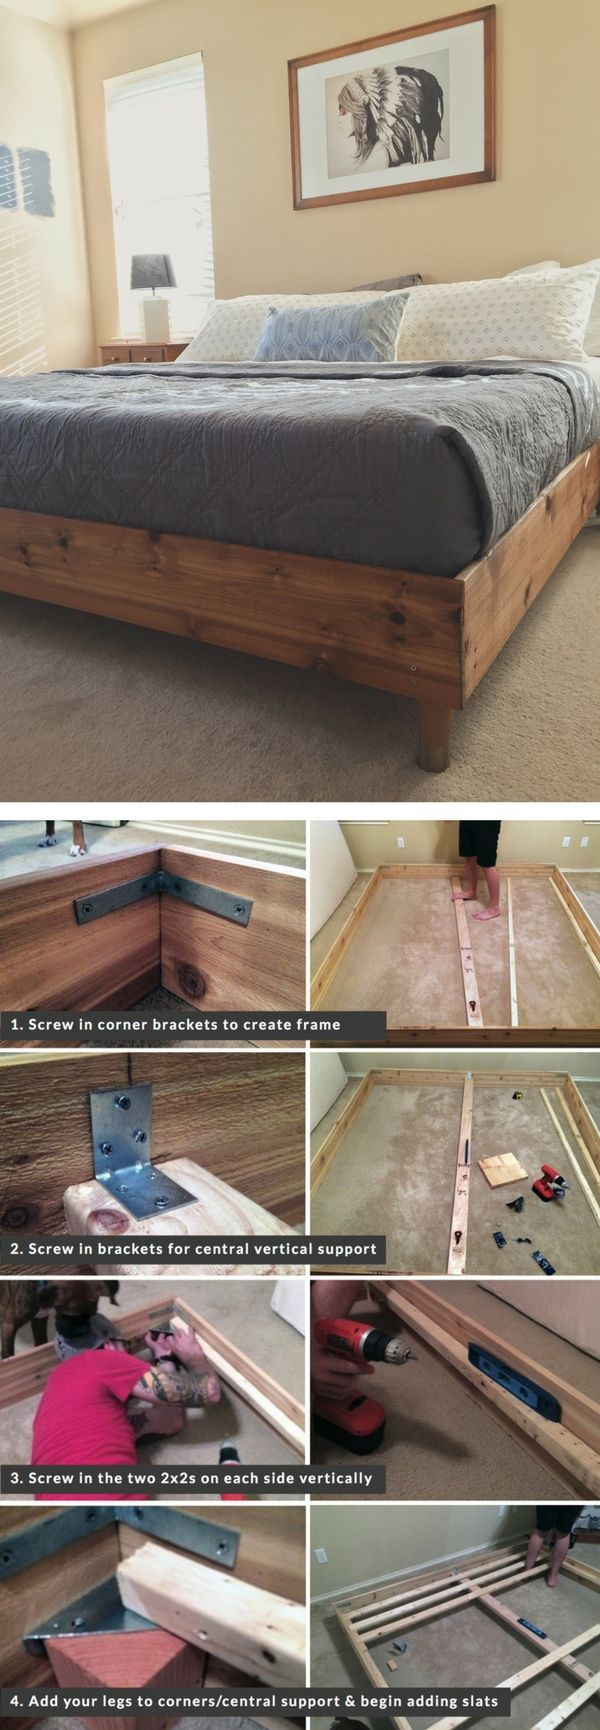 Check out the tutorial on how to build a DIY king size bed @istandarddesign (Diy Storage Bedroom)